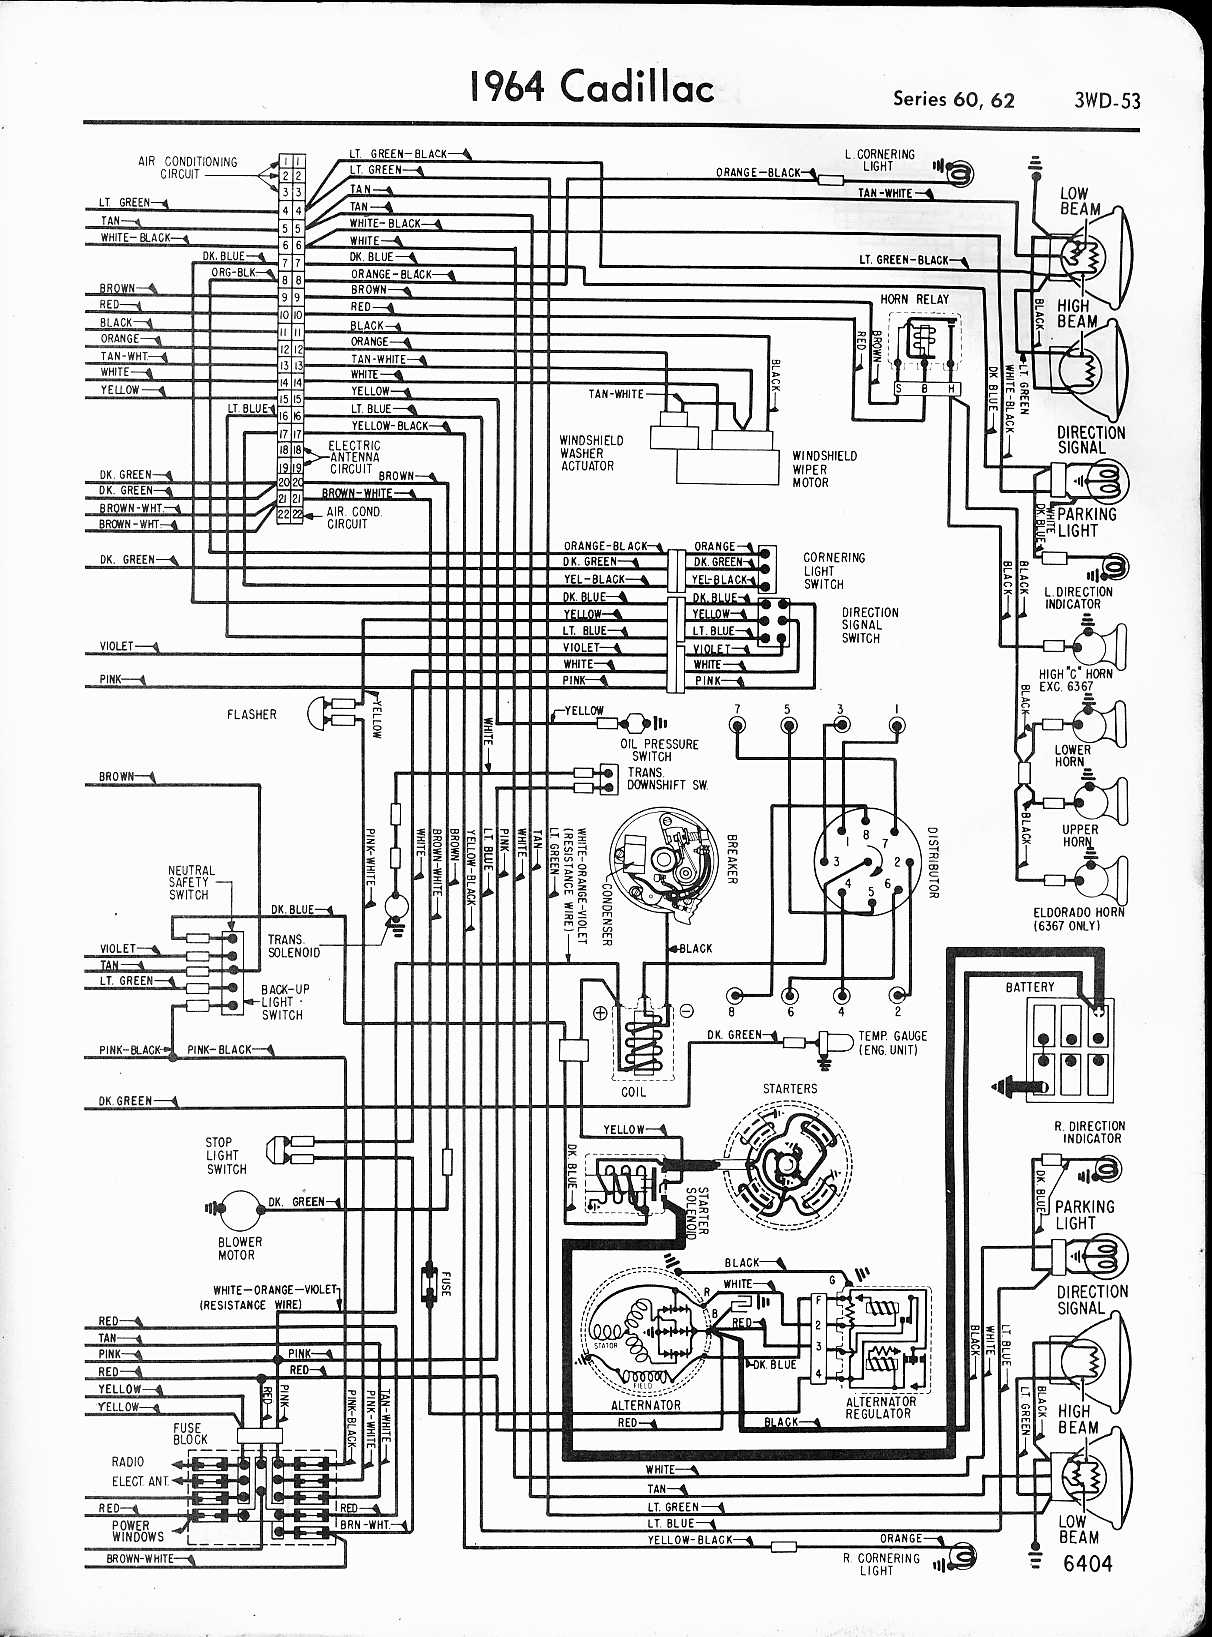 2001 Cadillac Deville Wiring Diagram - Wiring Diagram For Yamaha Dirt Bike  for Wiring Diagram SchematicsWiring Diagram Schematics